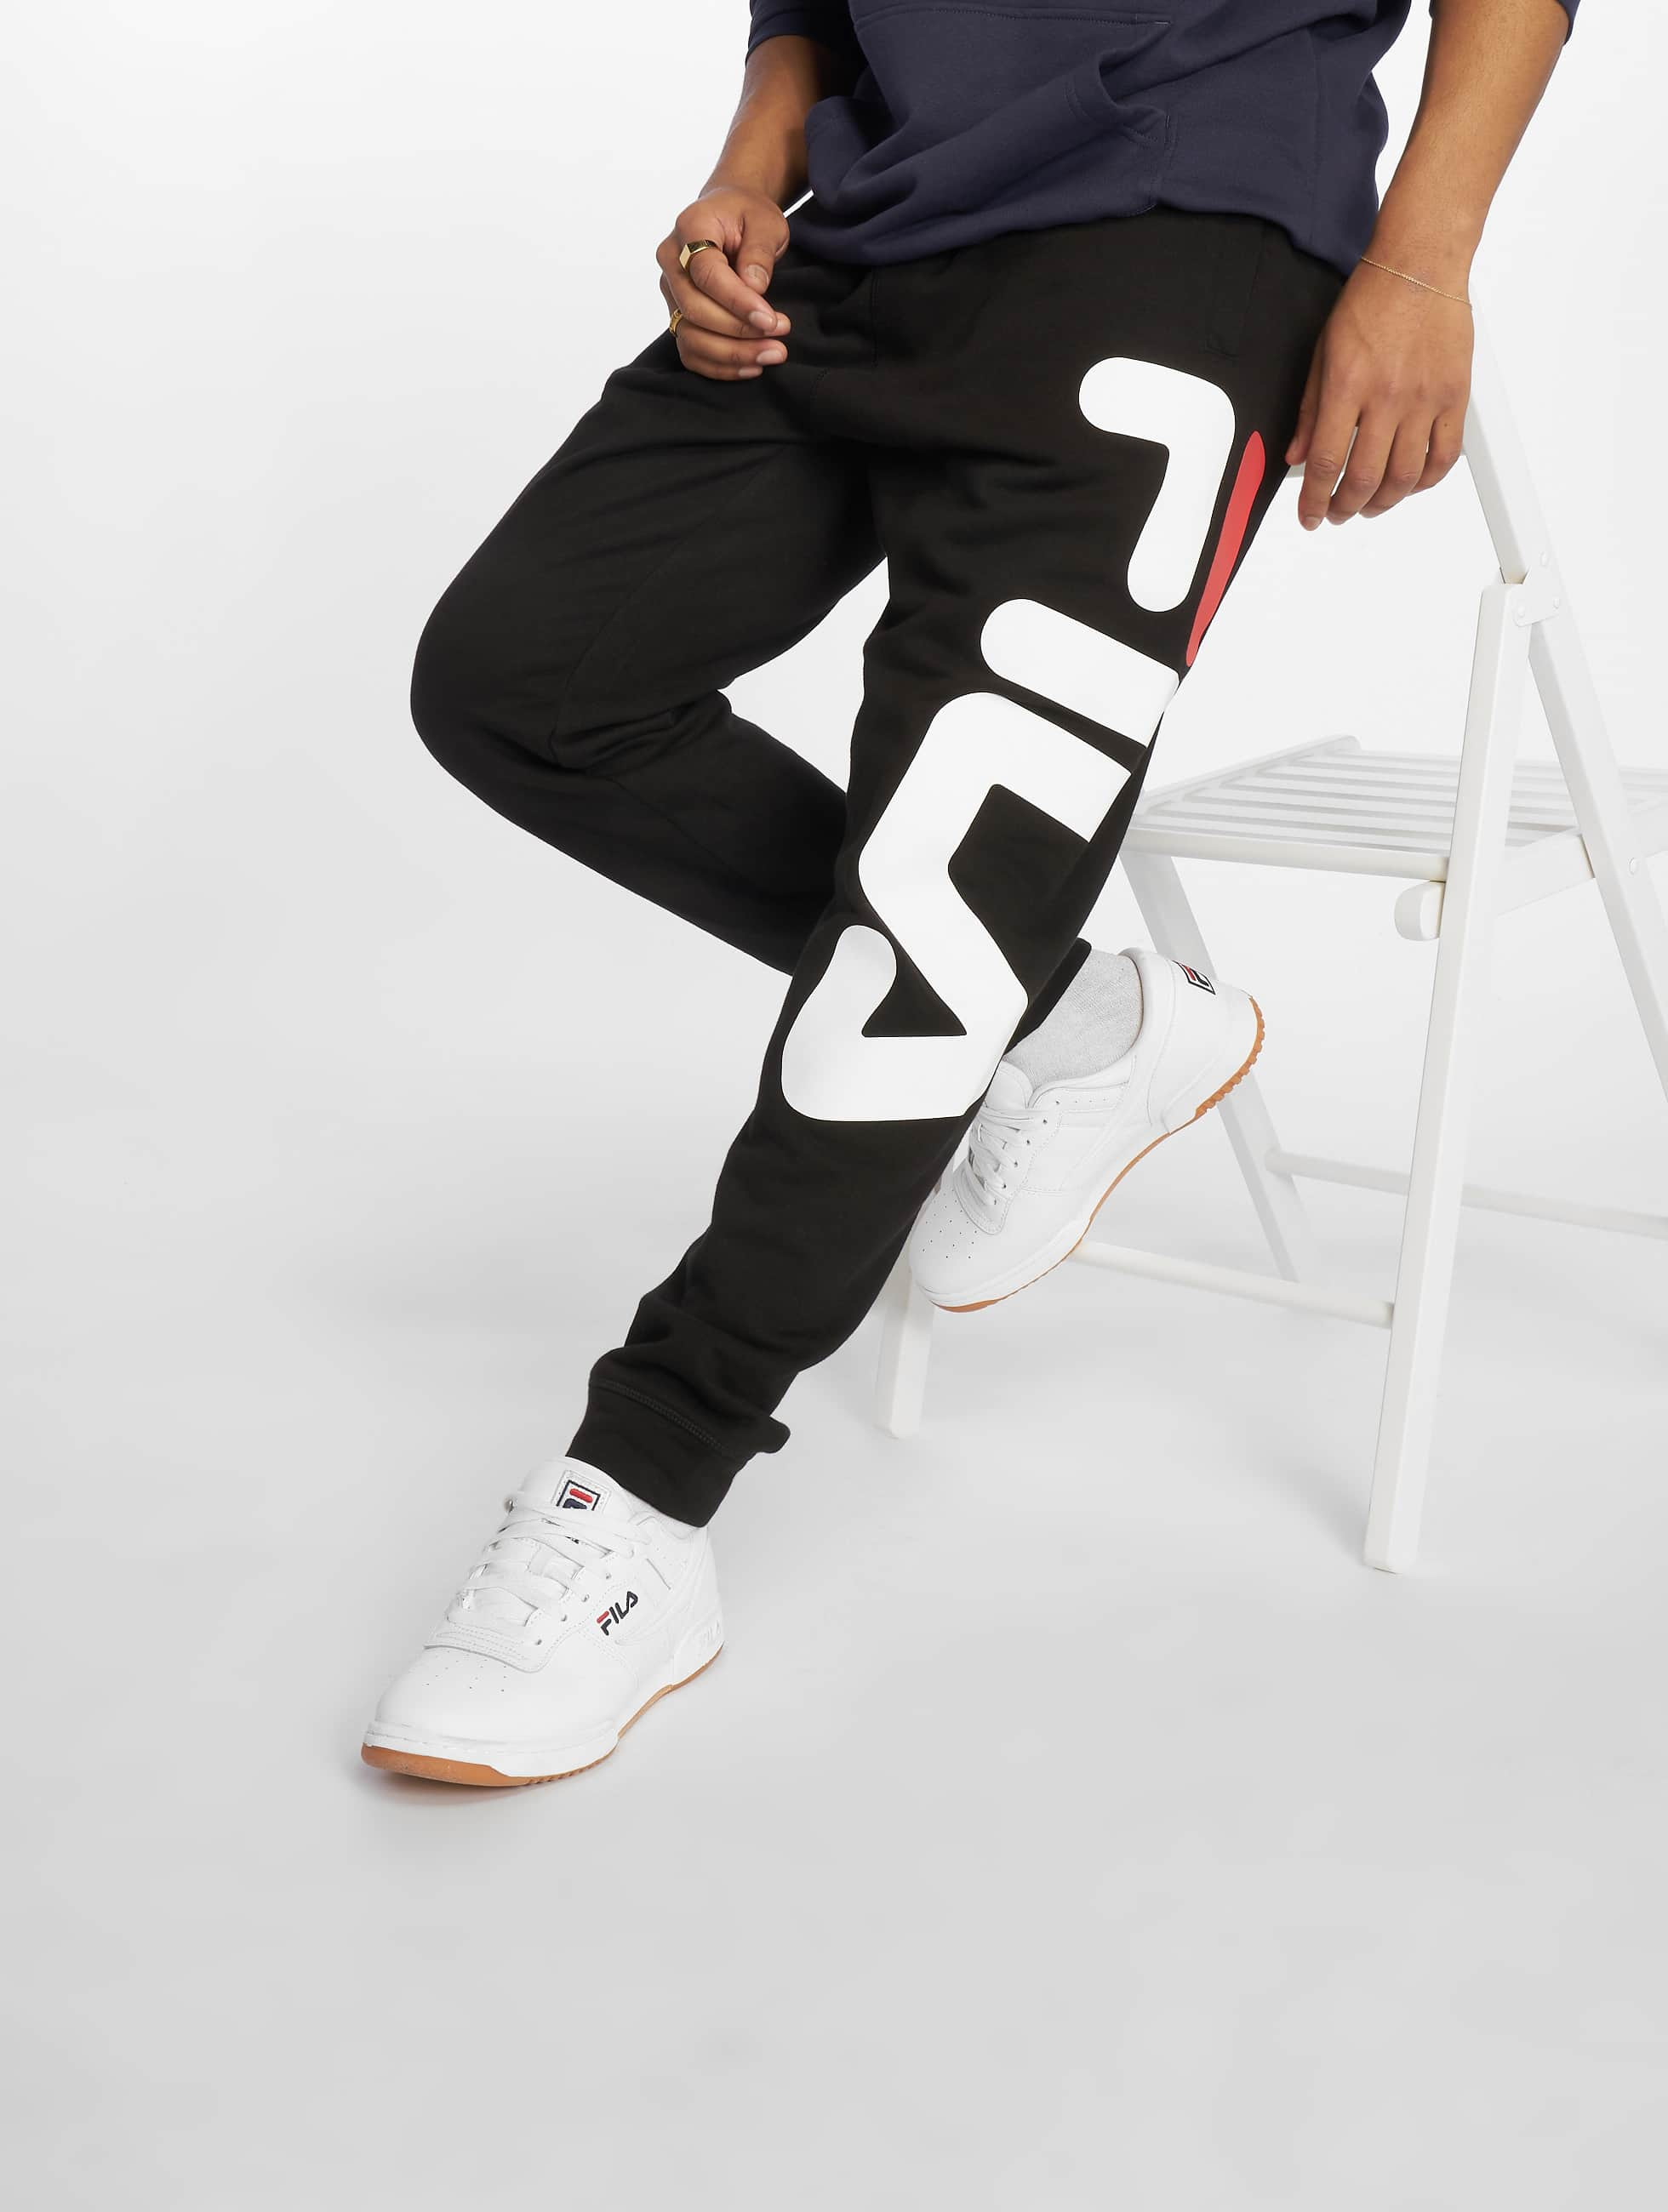 366bcf5fd2d FILA broek / joggingbroek Urban Line Basic in zwart 632720